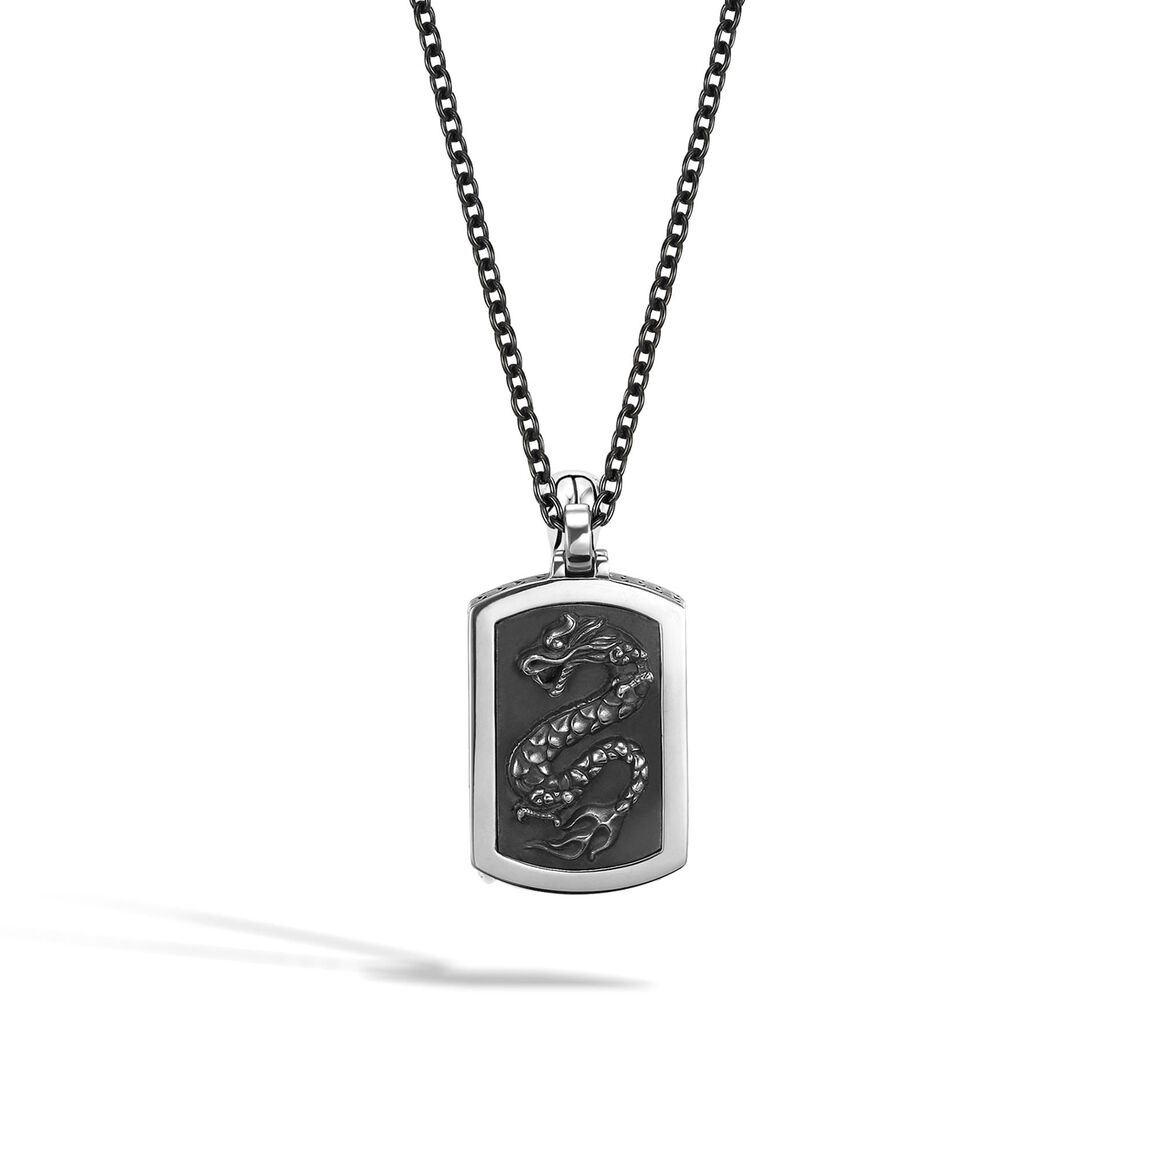 Legends Naga Dog Tag Pendant